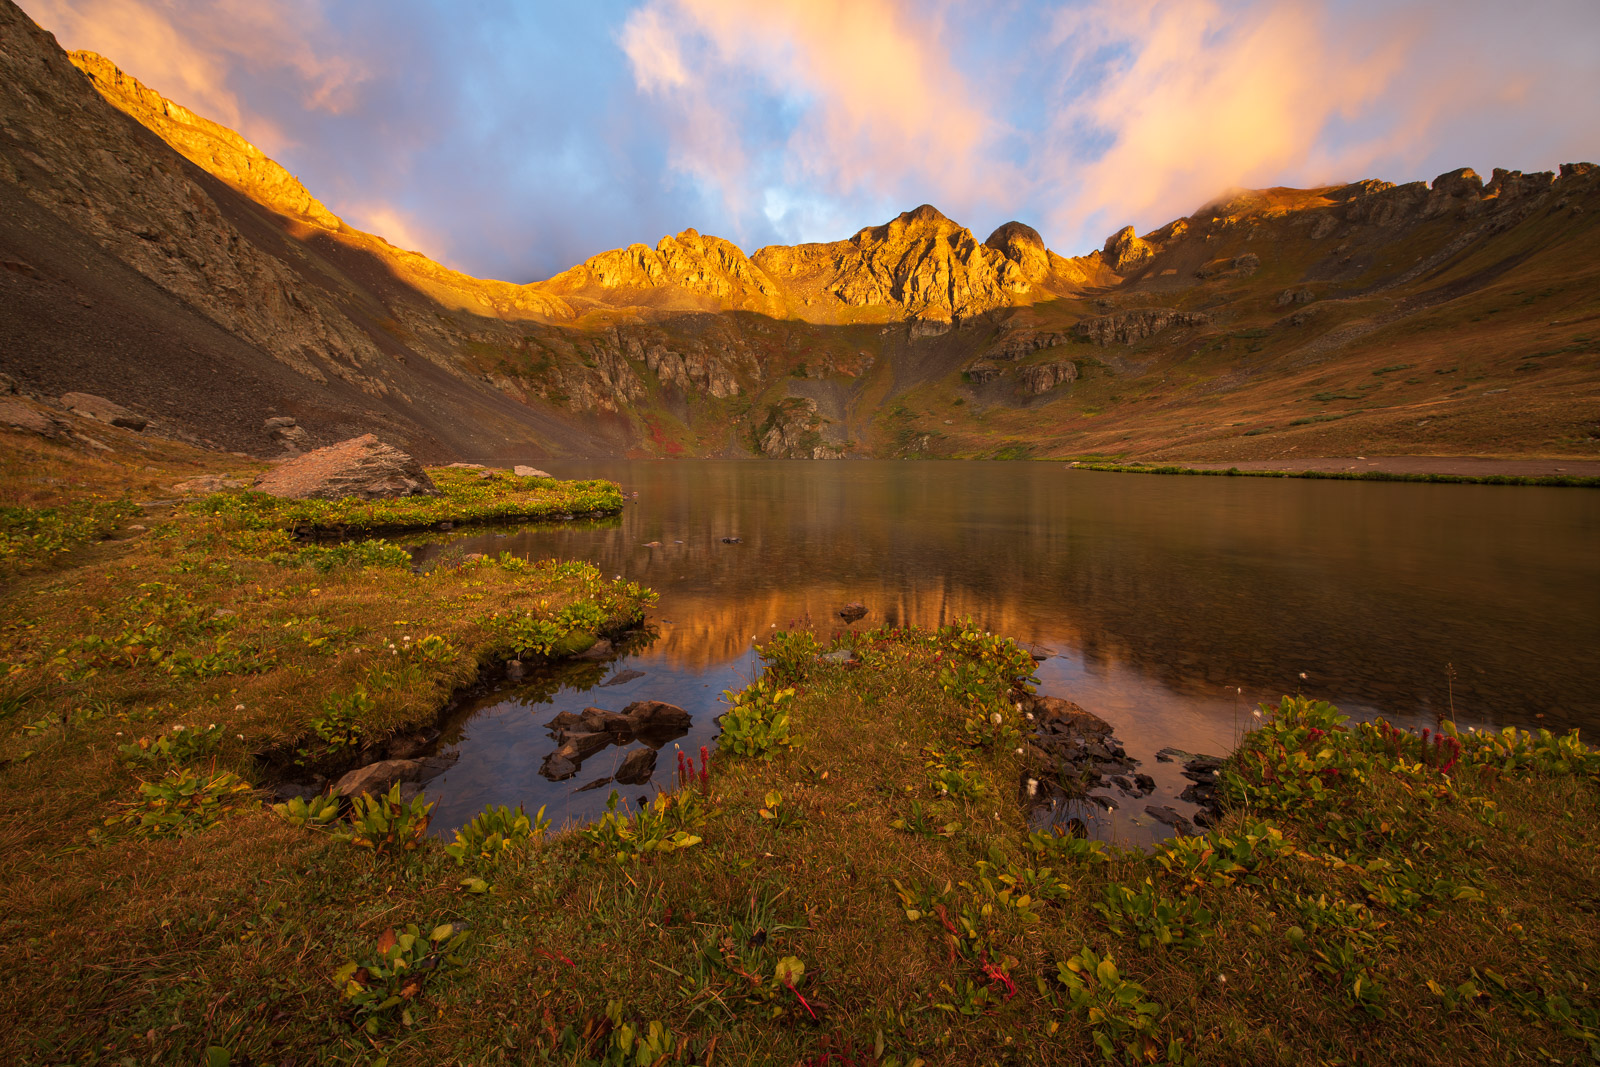 Sunrise at Clear Lake hig in the San Juan Mountains near Silverton, Colorado.Add beauty to your space with a Joseph Rossbach...